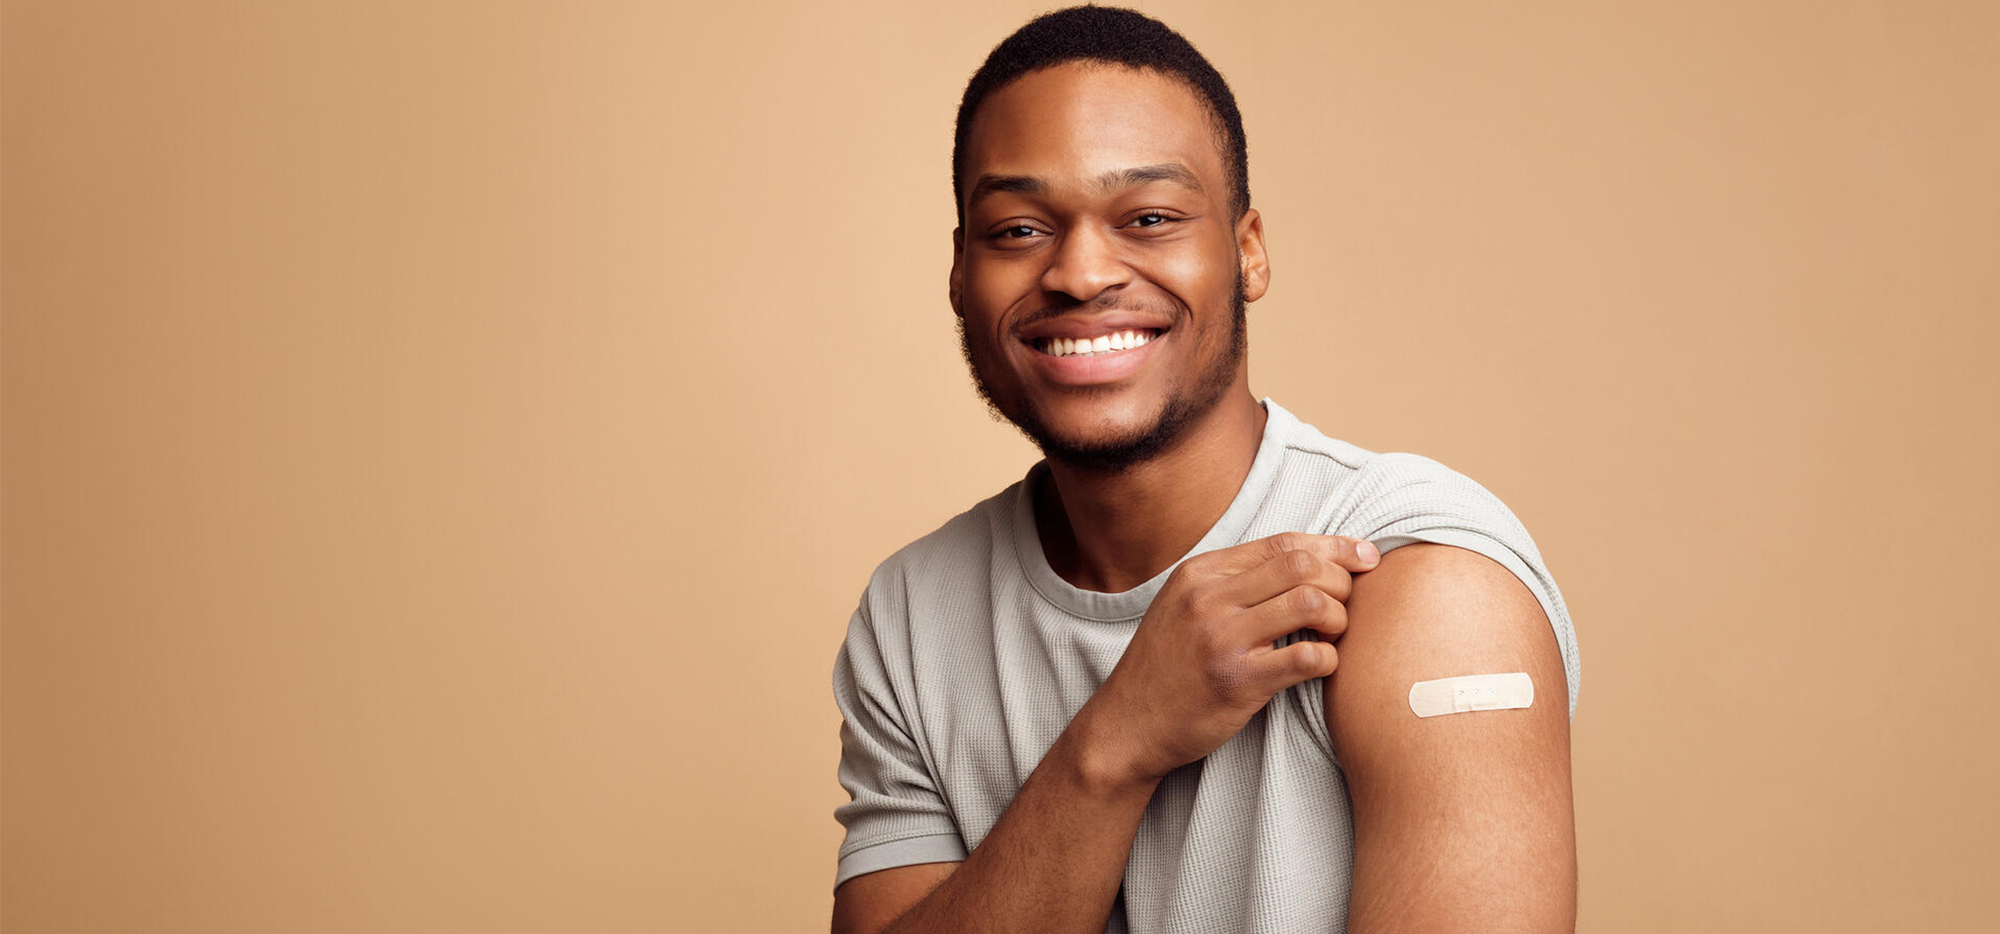 a man rolling up his sleeve and showing a vaccination band-aid